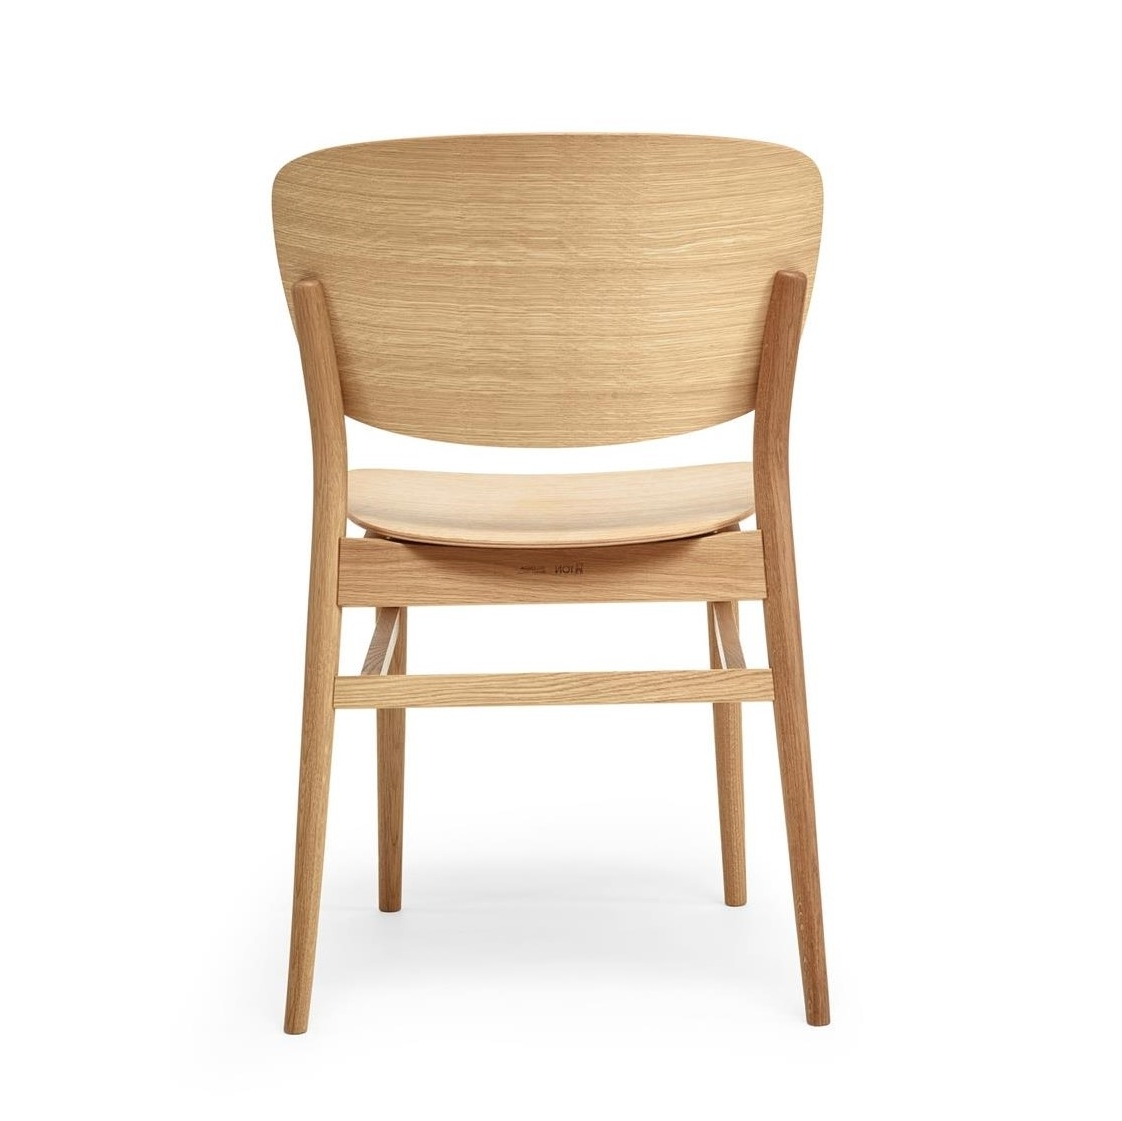 Valencia Side Chairs Pertaining To Fashionable Valencia Side Chair, Wooden – Telegraph Contract Furniture (View 16 of 20)